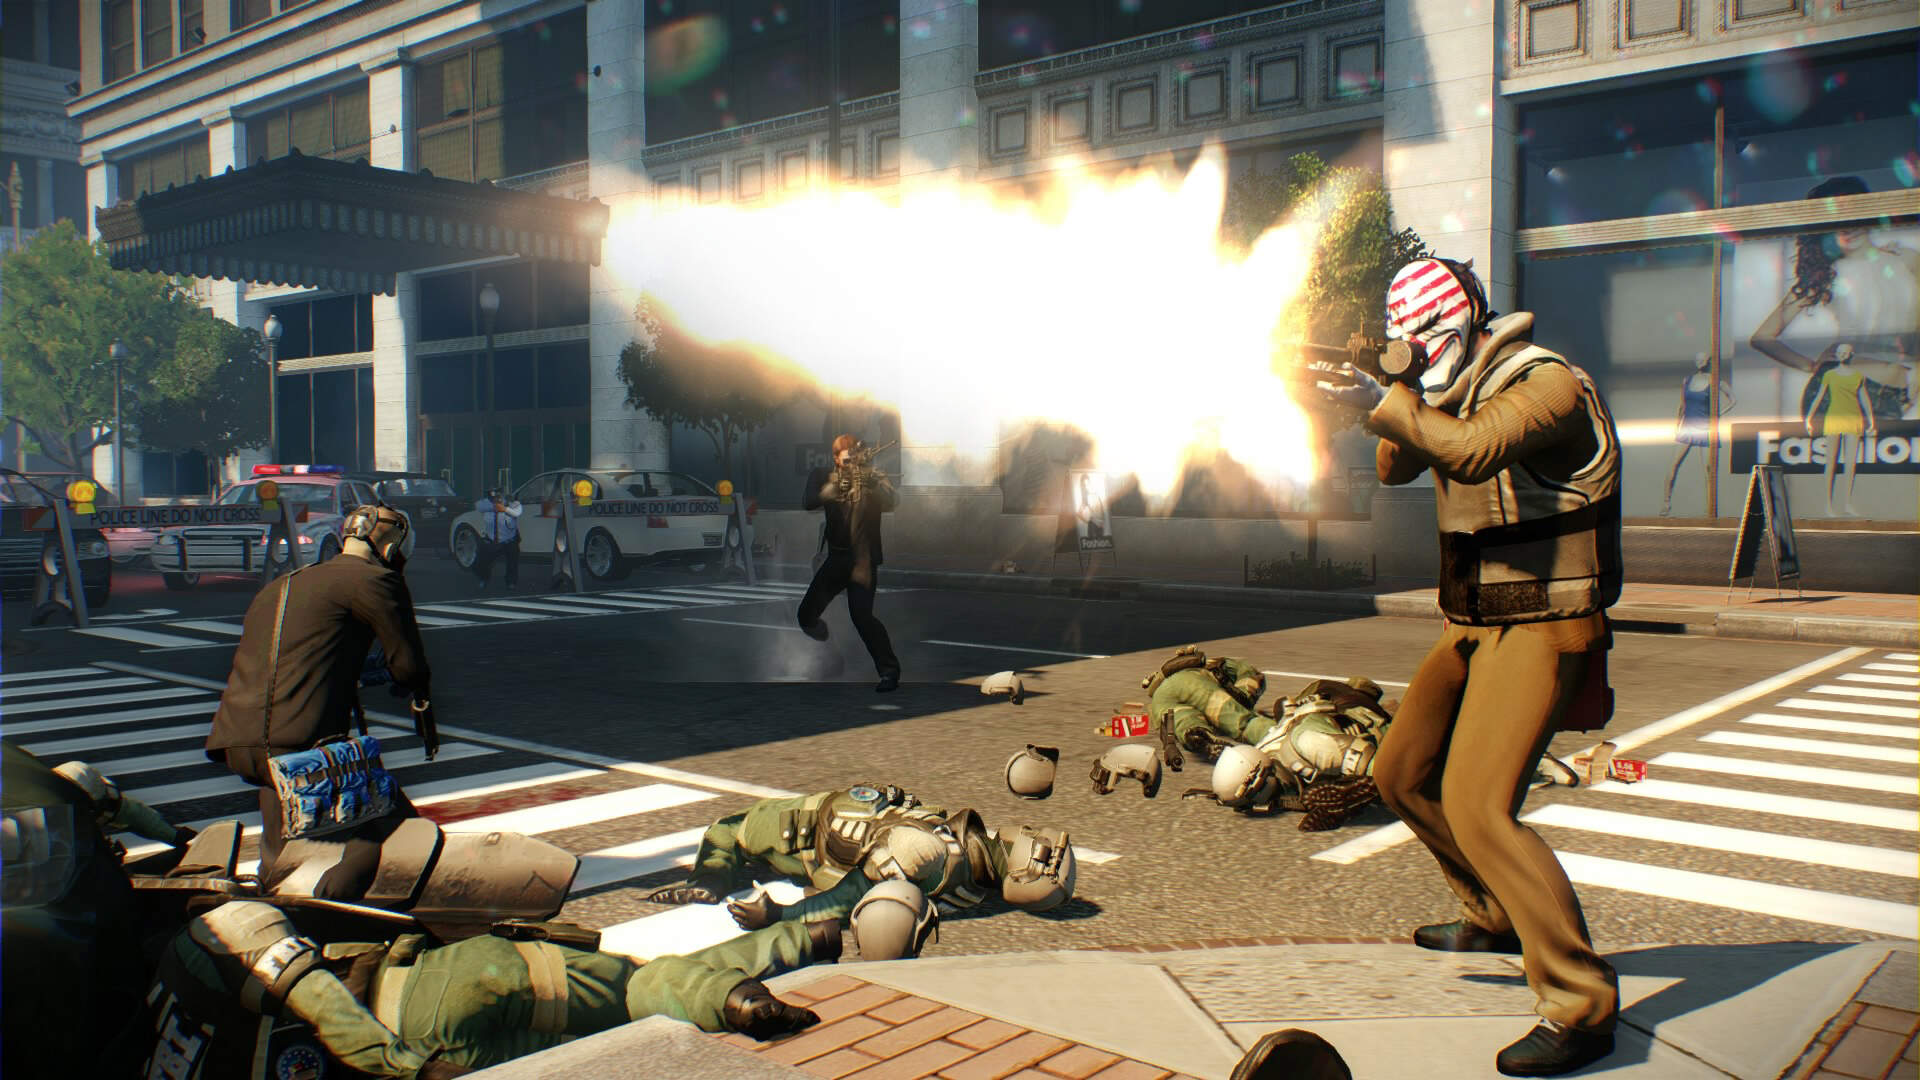 Payday 2 Resumes Development, Scraps Forever-Free DLC Amid Starbreeze Woes